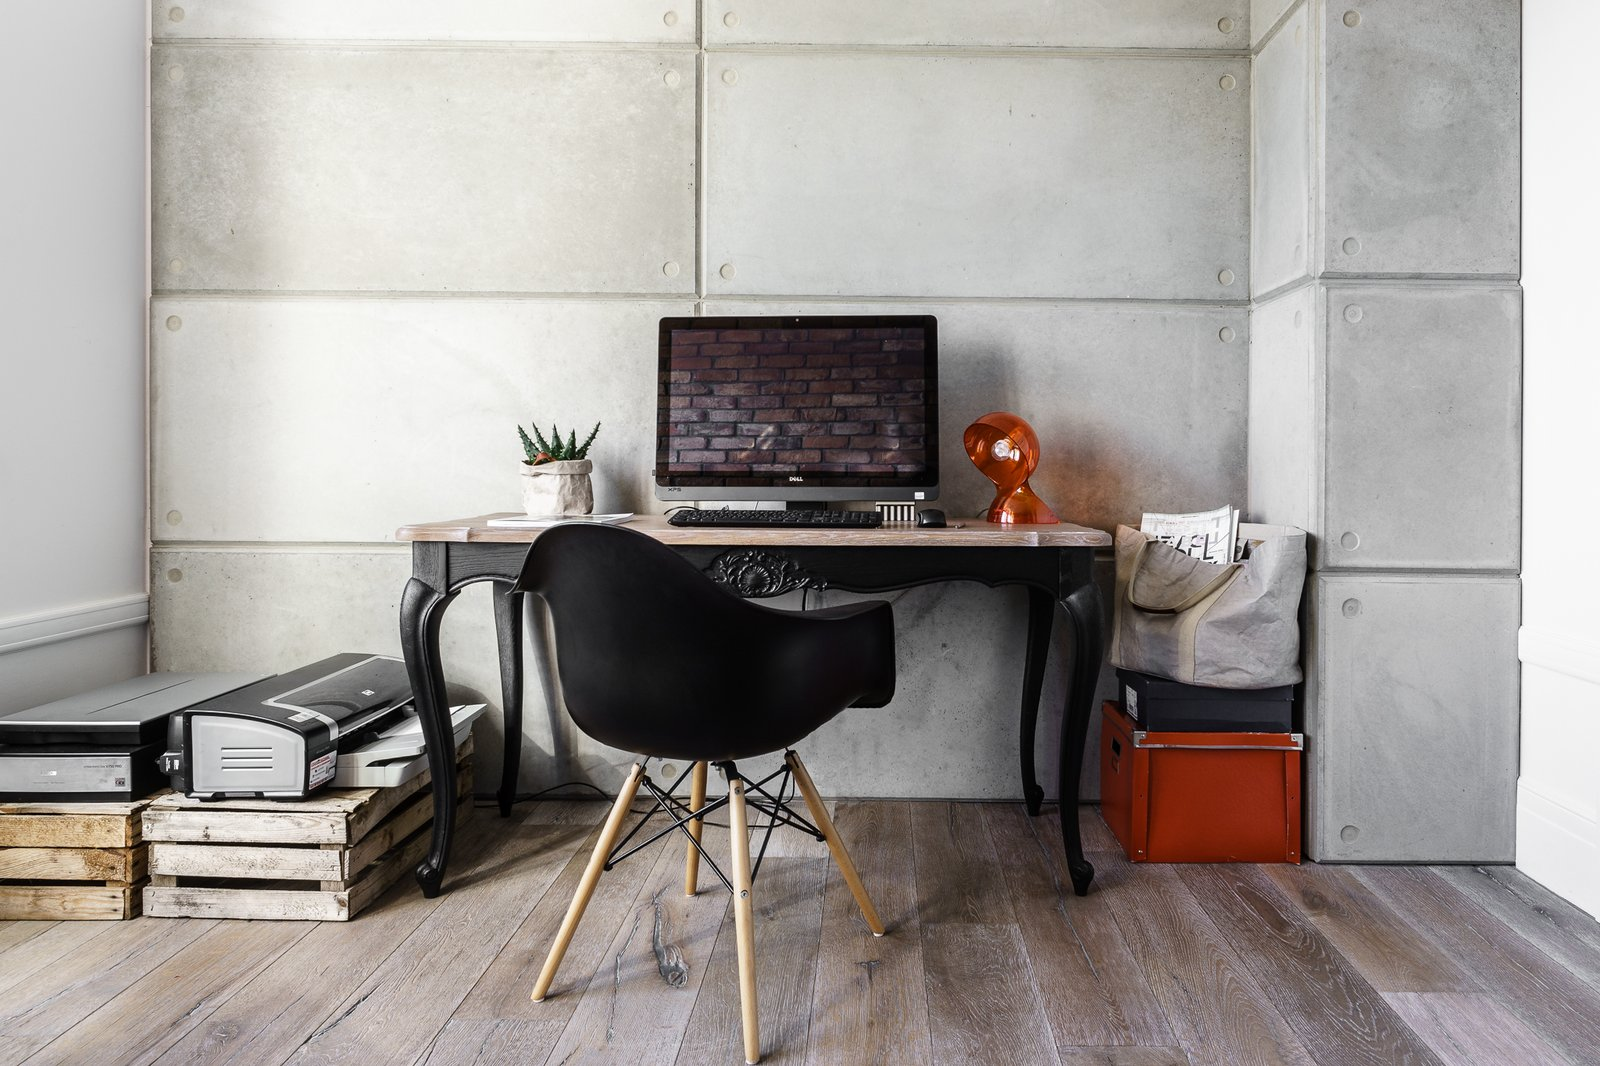 Tagged: Office, Desk, Chair, Study, and Medium Hardwood Floor.  Loft in Poland by Lucyna Kołodziejska | INTERIORS FACTORY